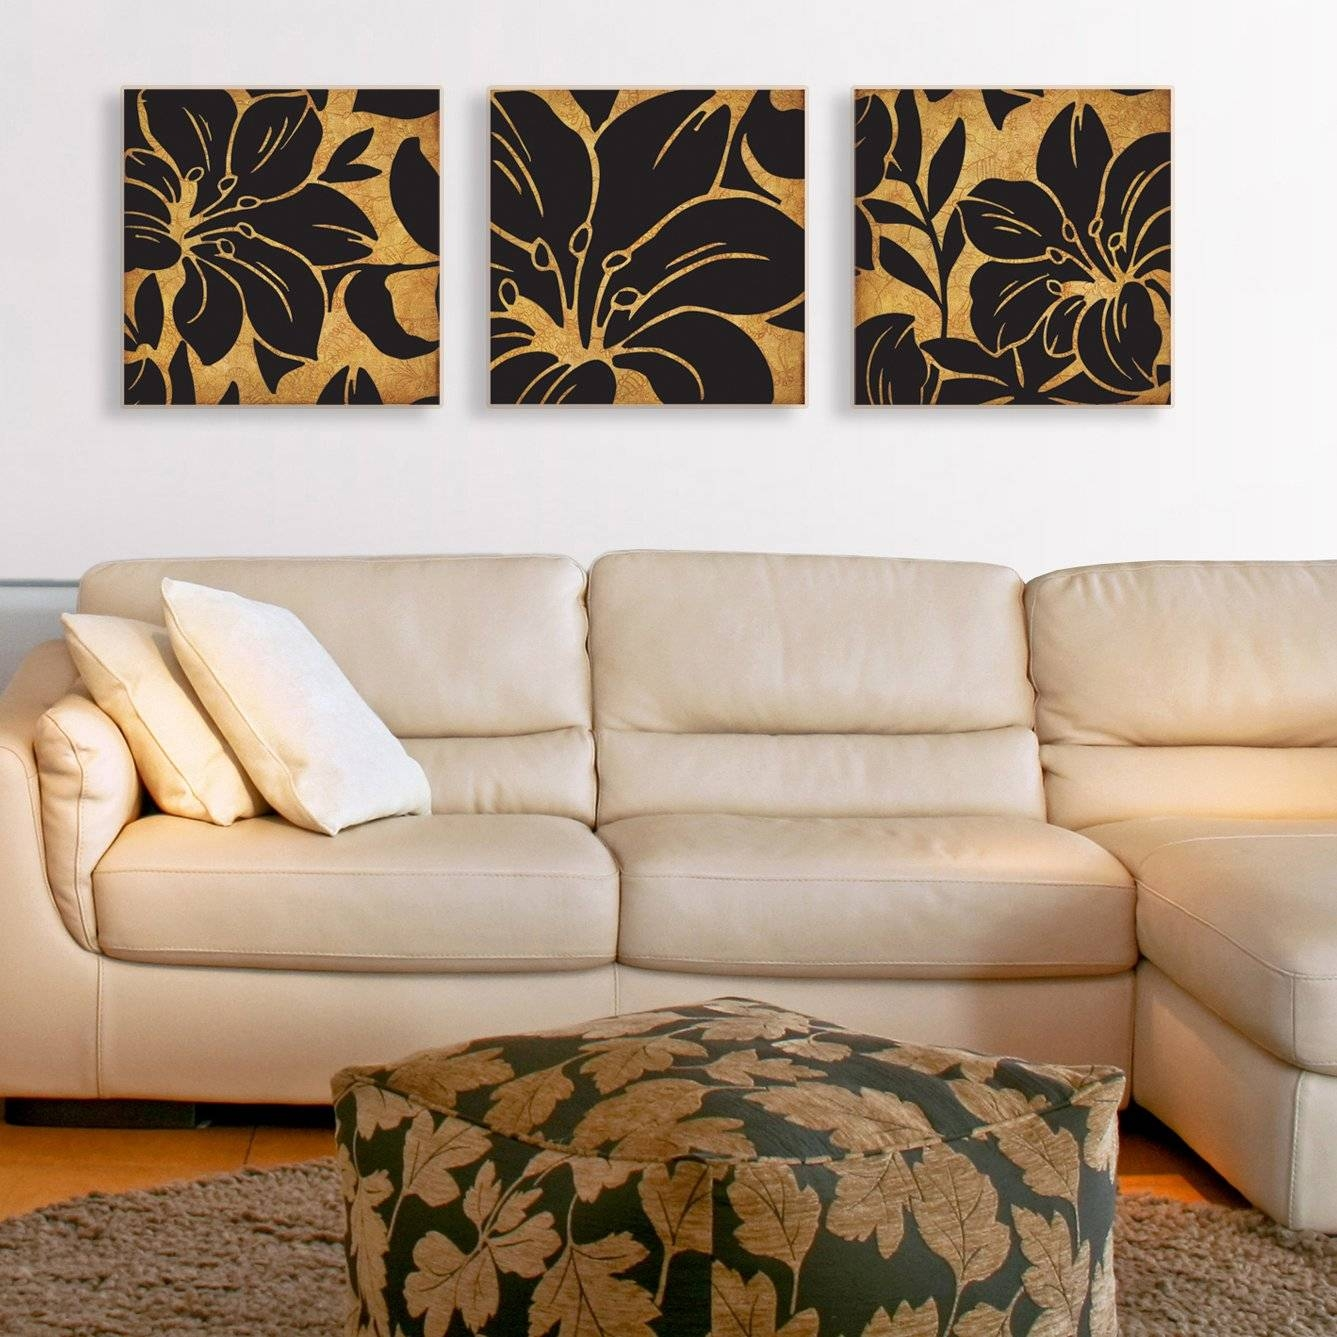 3 Piece Canvas Wall Art | Roselawnlutheran Inside Most Popular 3 Piece Floral Canvas Wall Art (View 4 of 20)